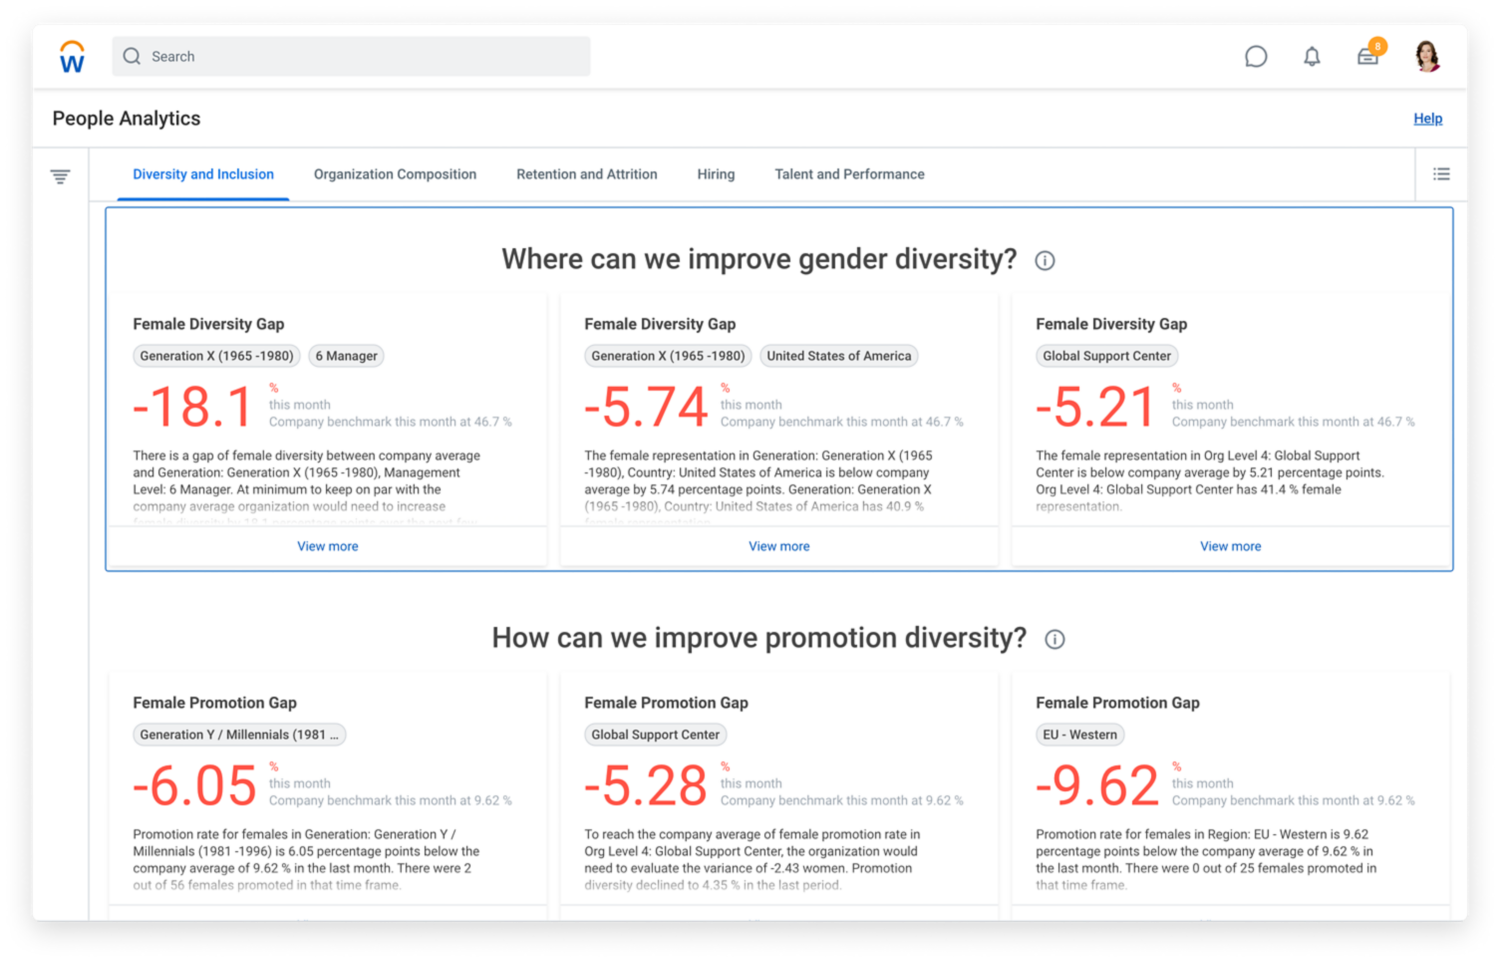 People analytics dashboard showing gender diversity trends and gaps.